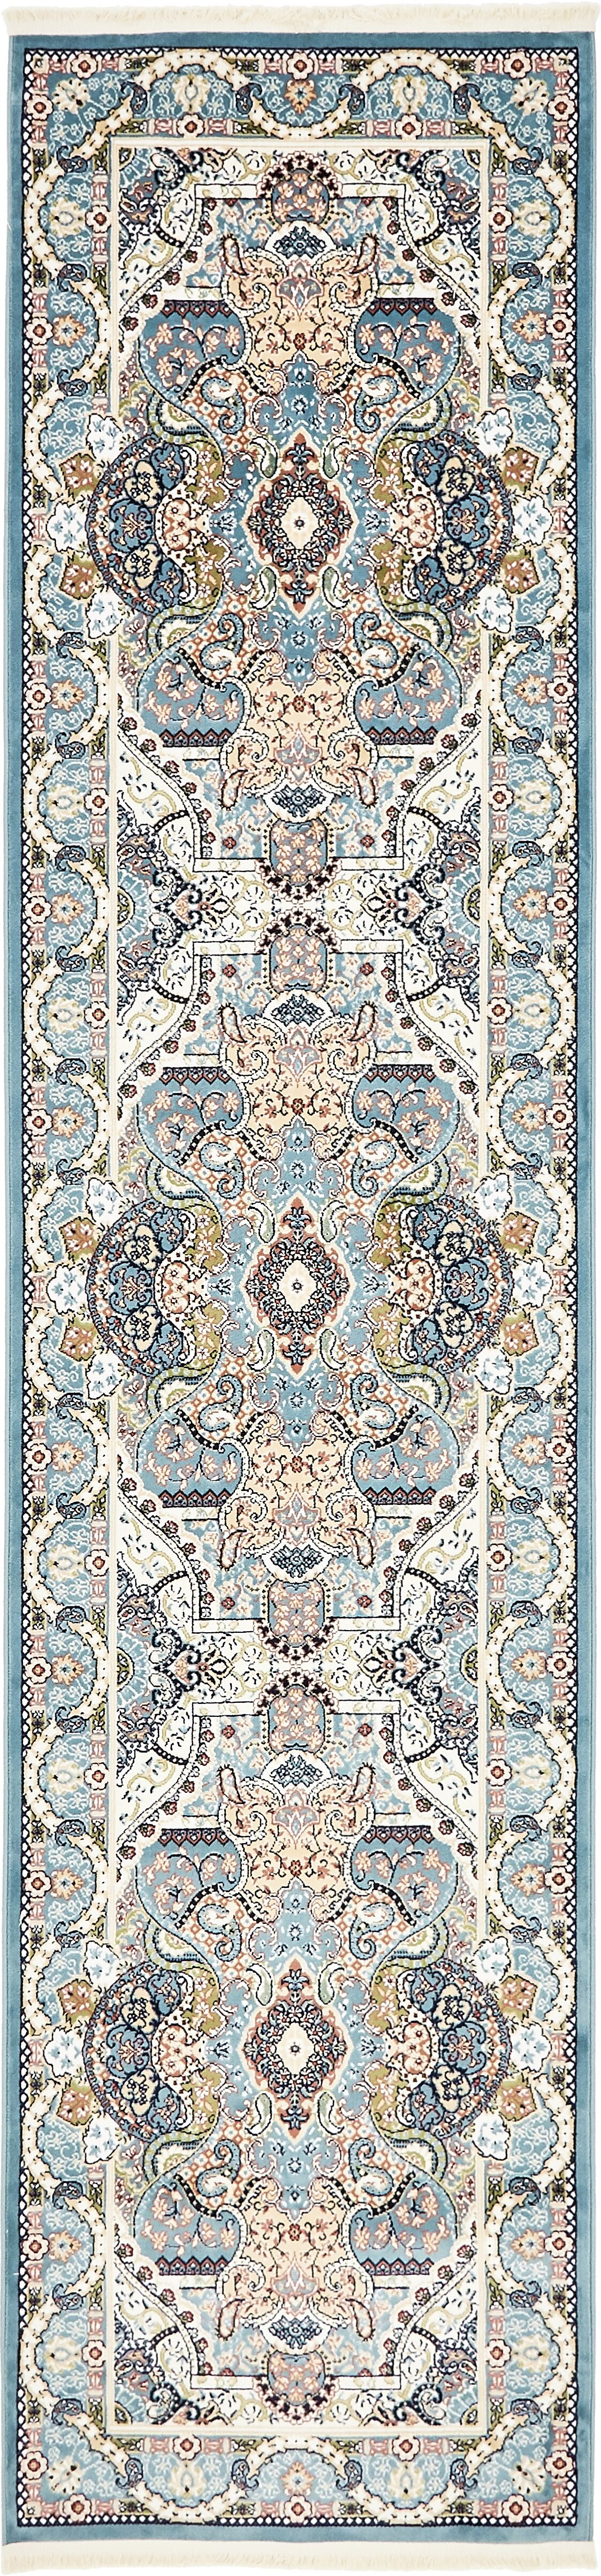 Quince Blue/Tan Area Rug Rug Size: Runner 3' x 13'